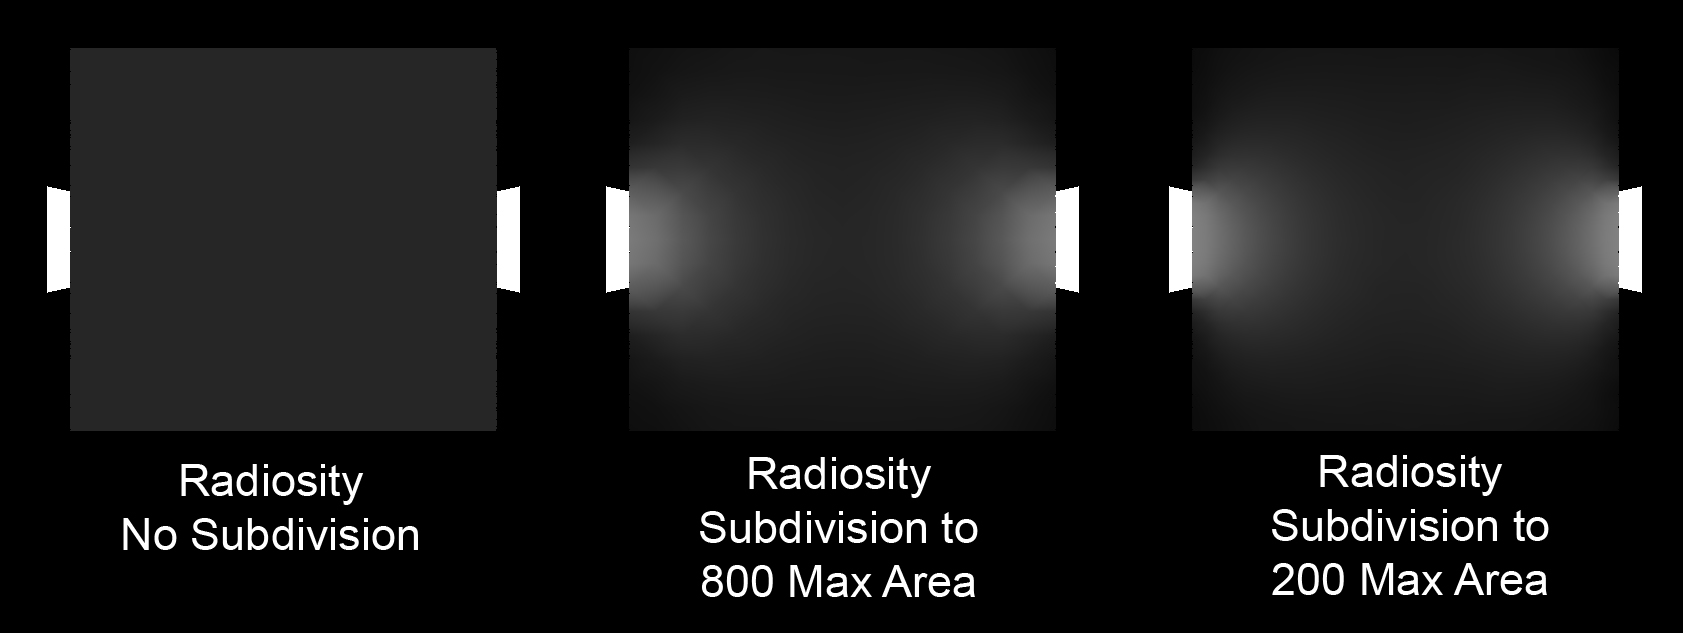 "Three levels of subdivision compared in radiosity renders of the ""emission"" test scene."